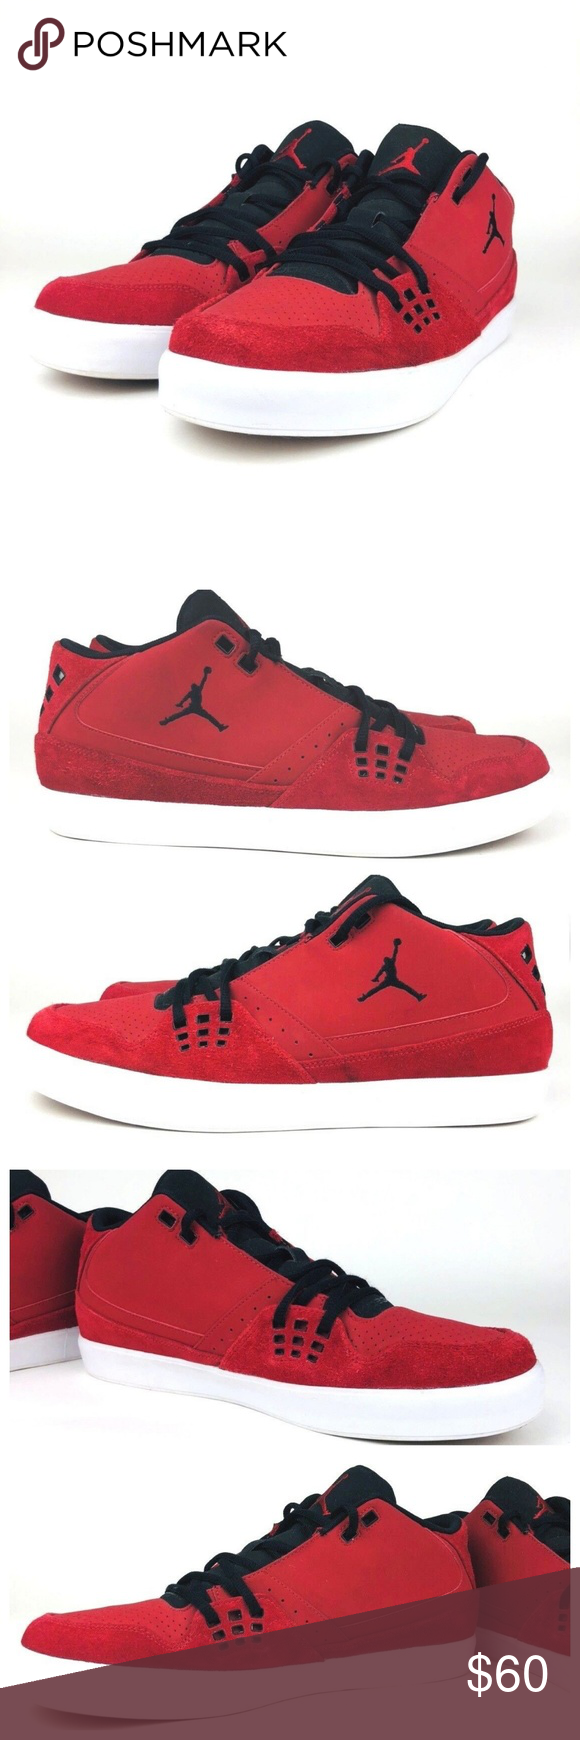 bb2b08da72597f Nike Jordan Flight 23 Sneakers 510892-601 Nike Jordan Flight 23 Classic Gym  Men s Size 13 Red Black White Sneakers Suede 2011 2012 Nike Shoes - Air  Jordan ...